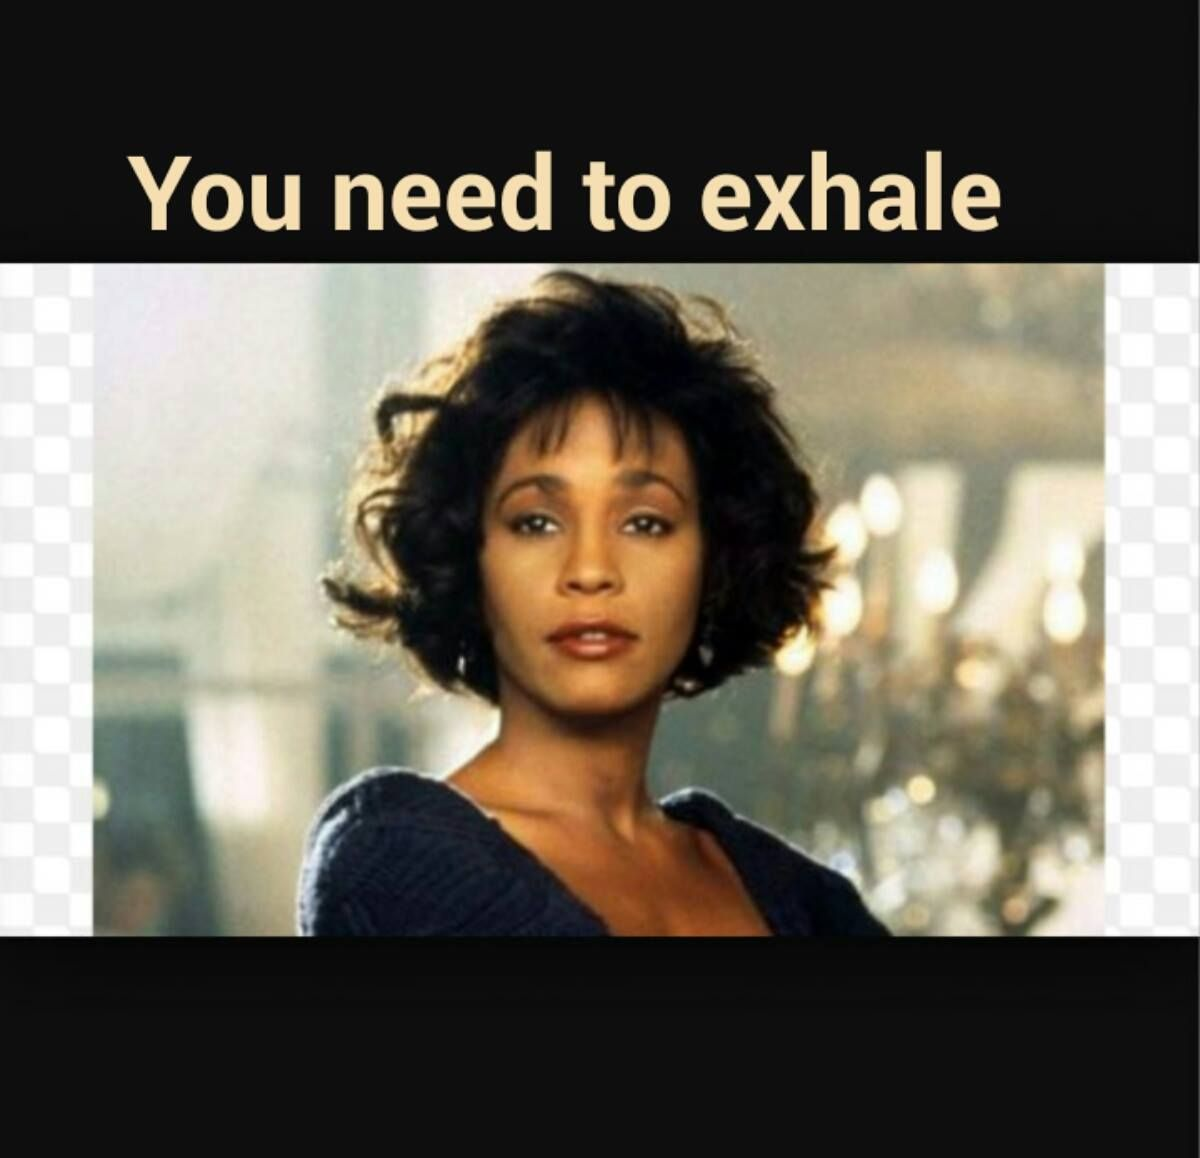 70d20a27a4a60bb919e984c553477b5f whitney houston, exhale, silly memes humor, ig'nance & ill shi,Whitney Houston Memes